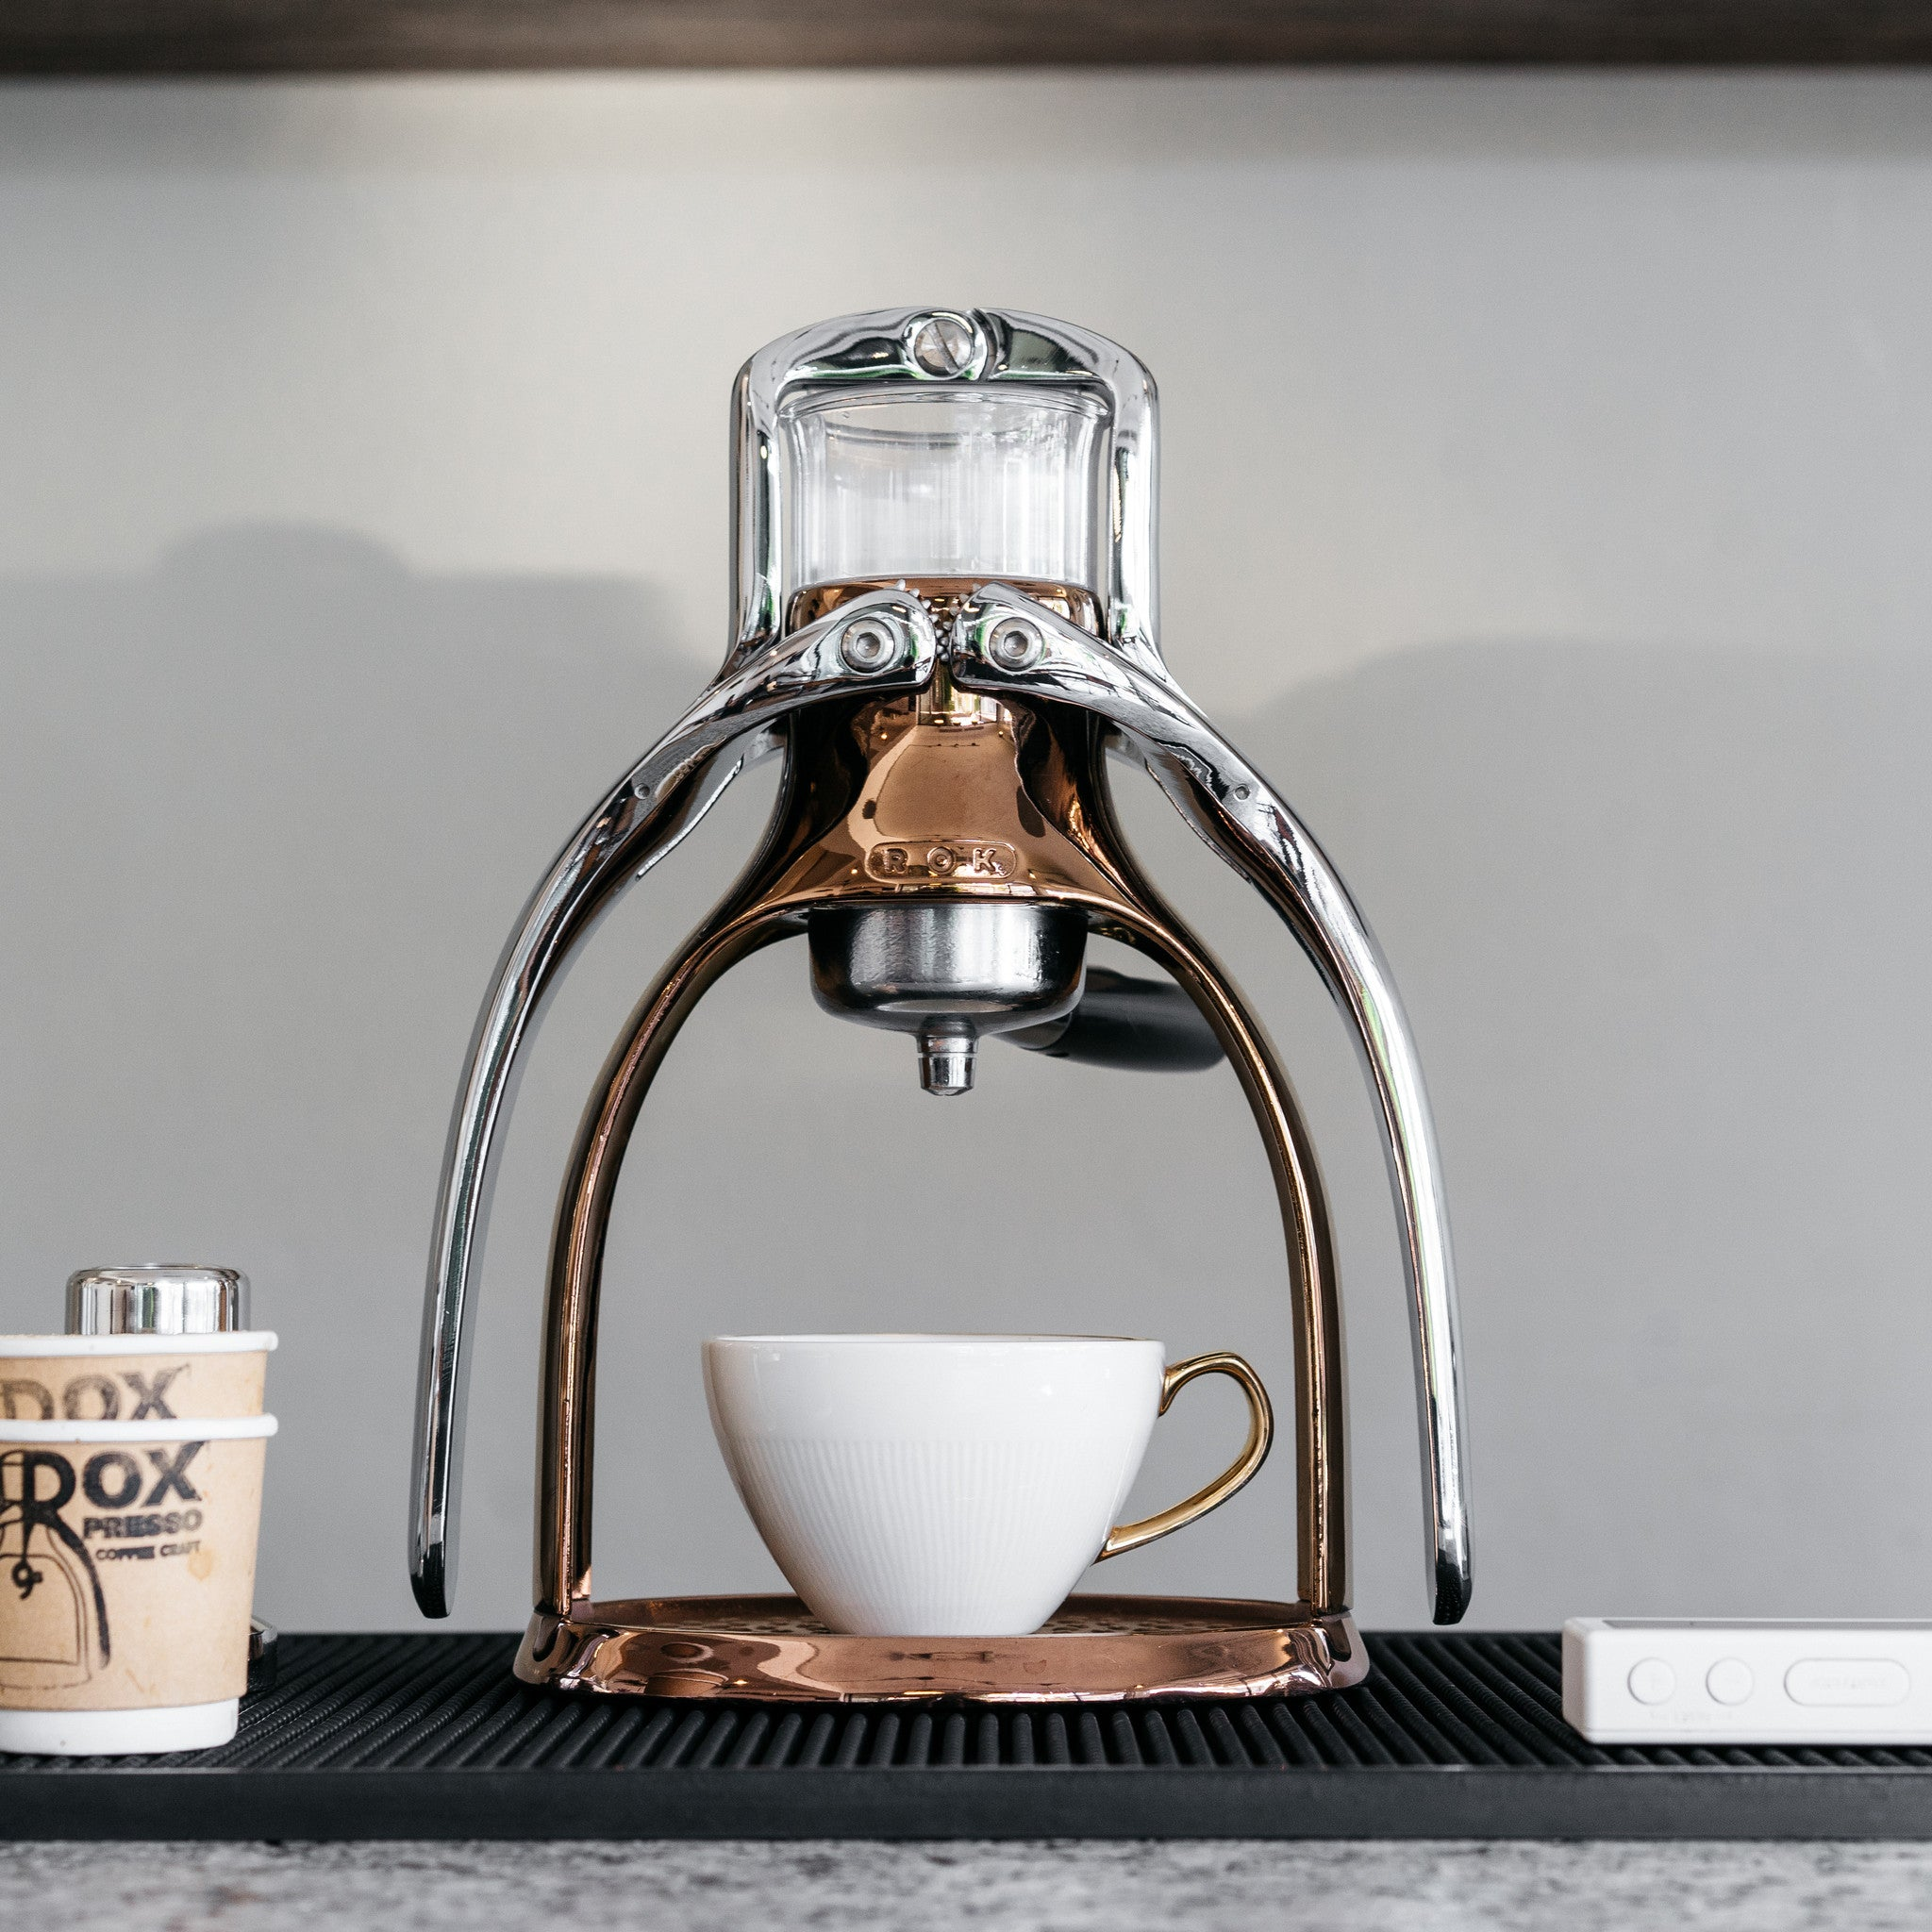 ROK Espresso Machine (Copper)